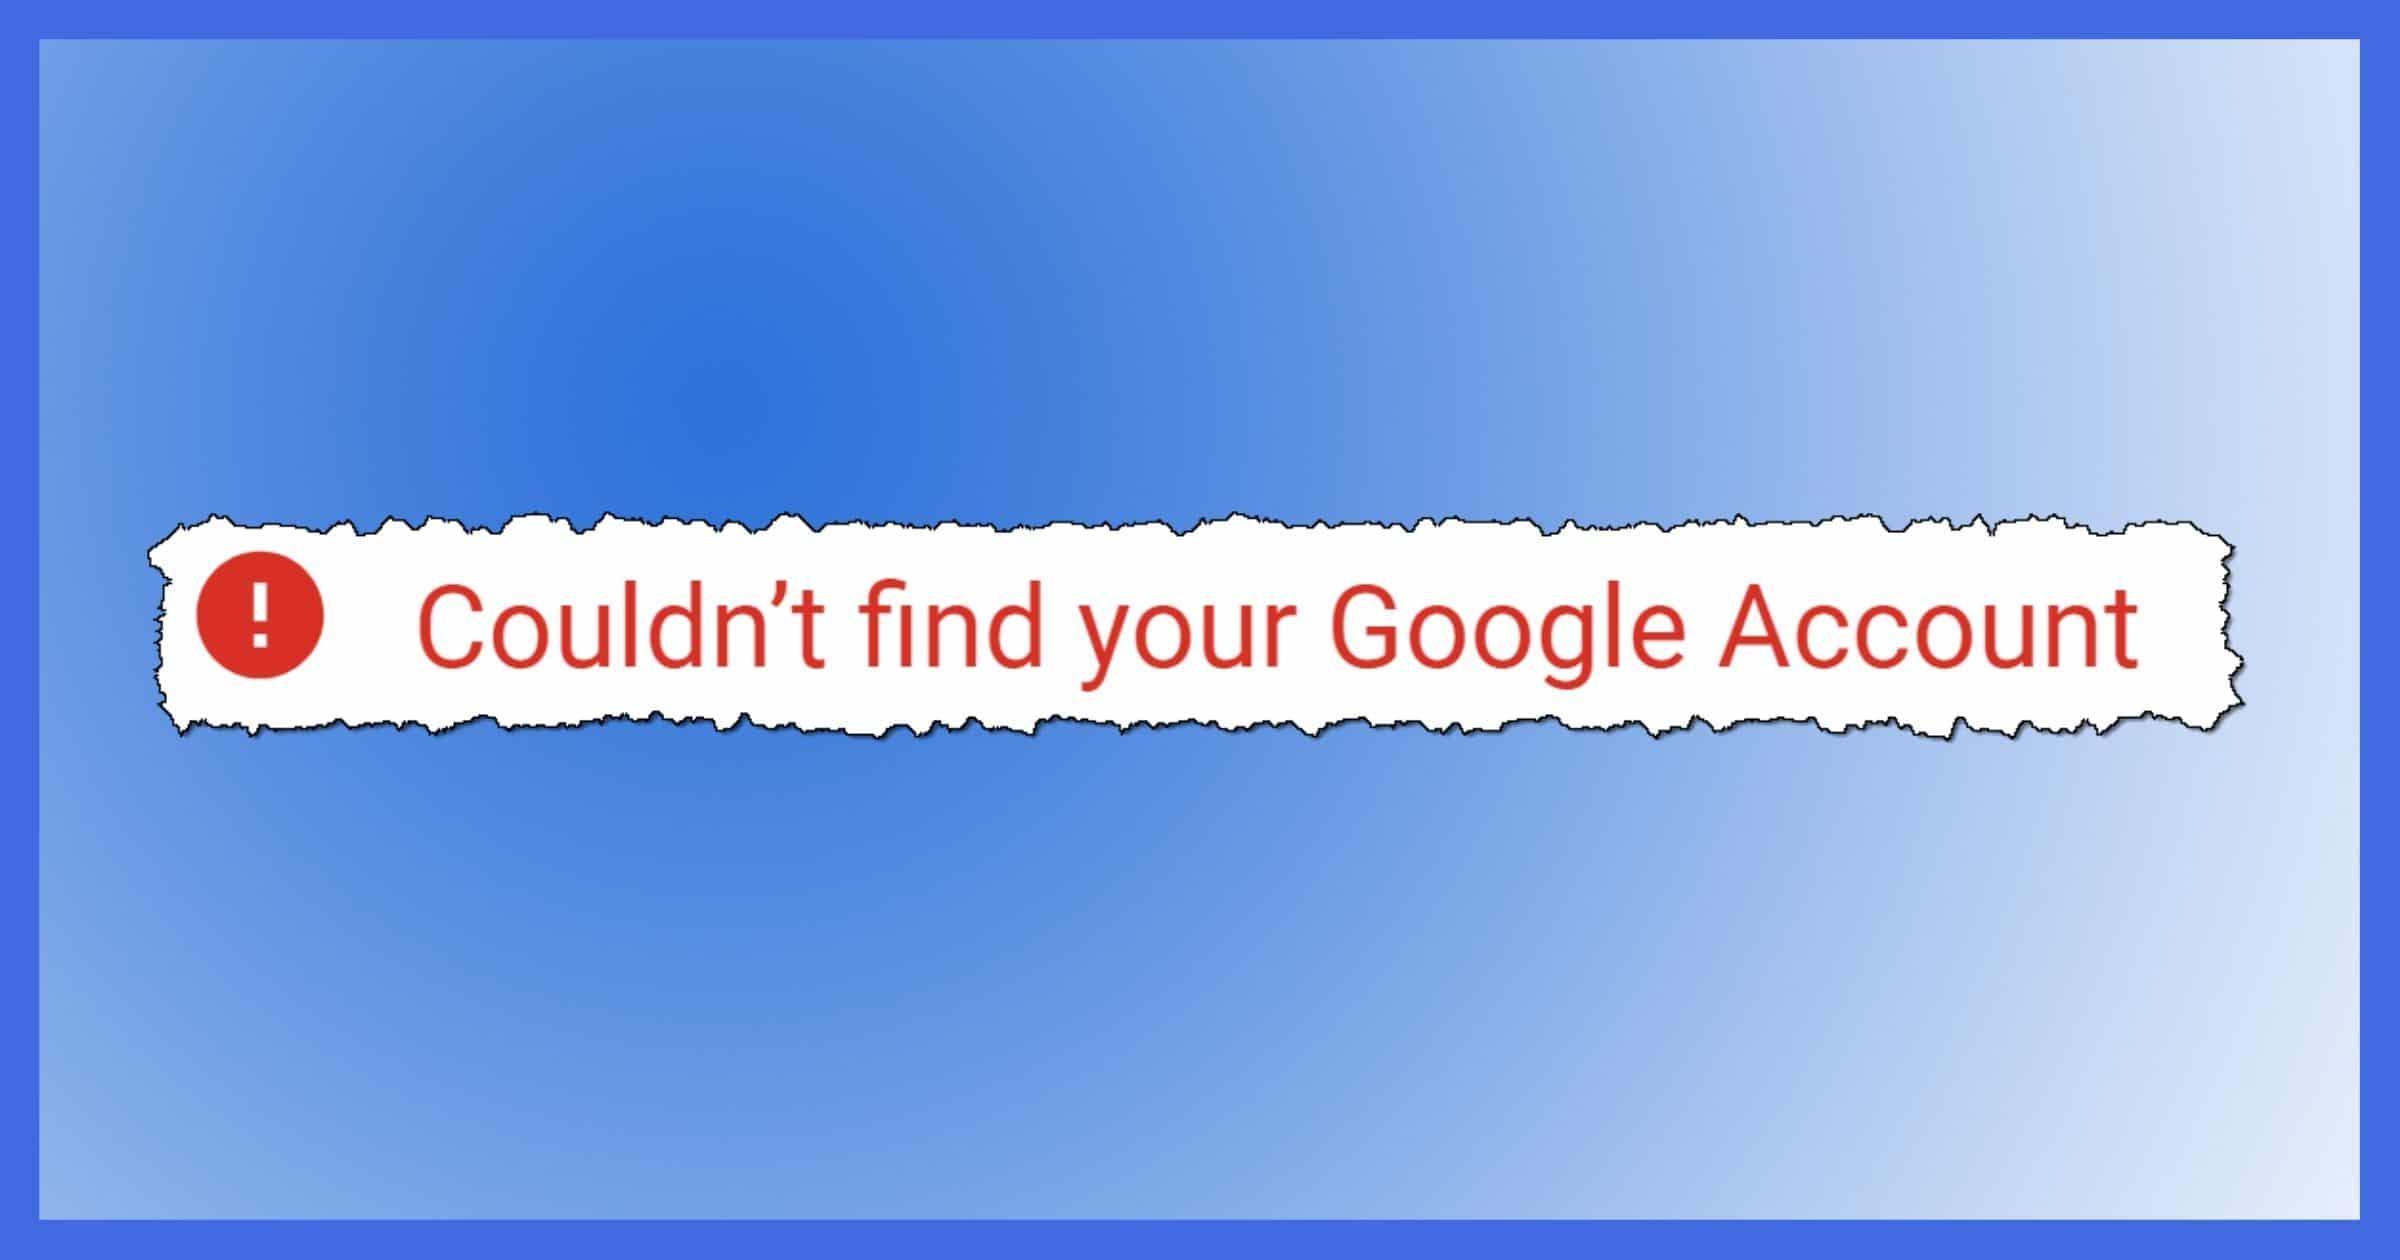 Couldn't Find Your Google Account!